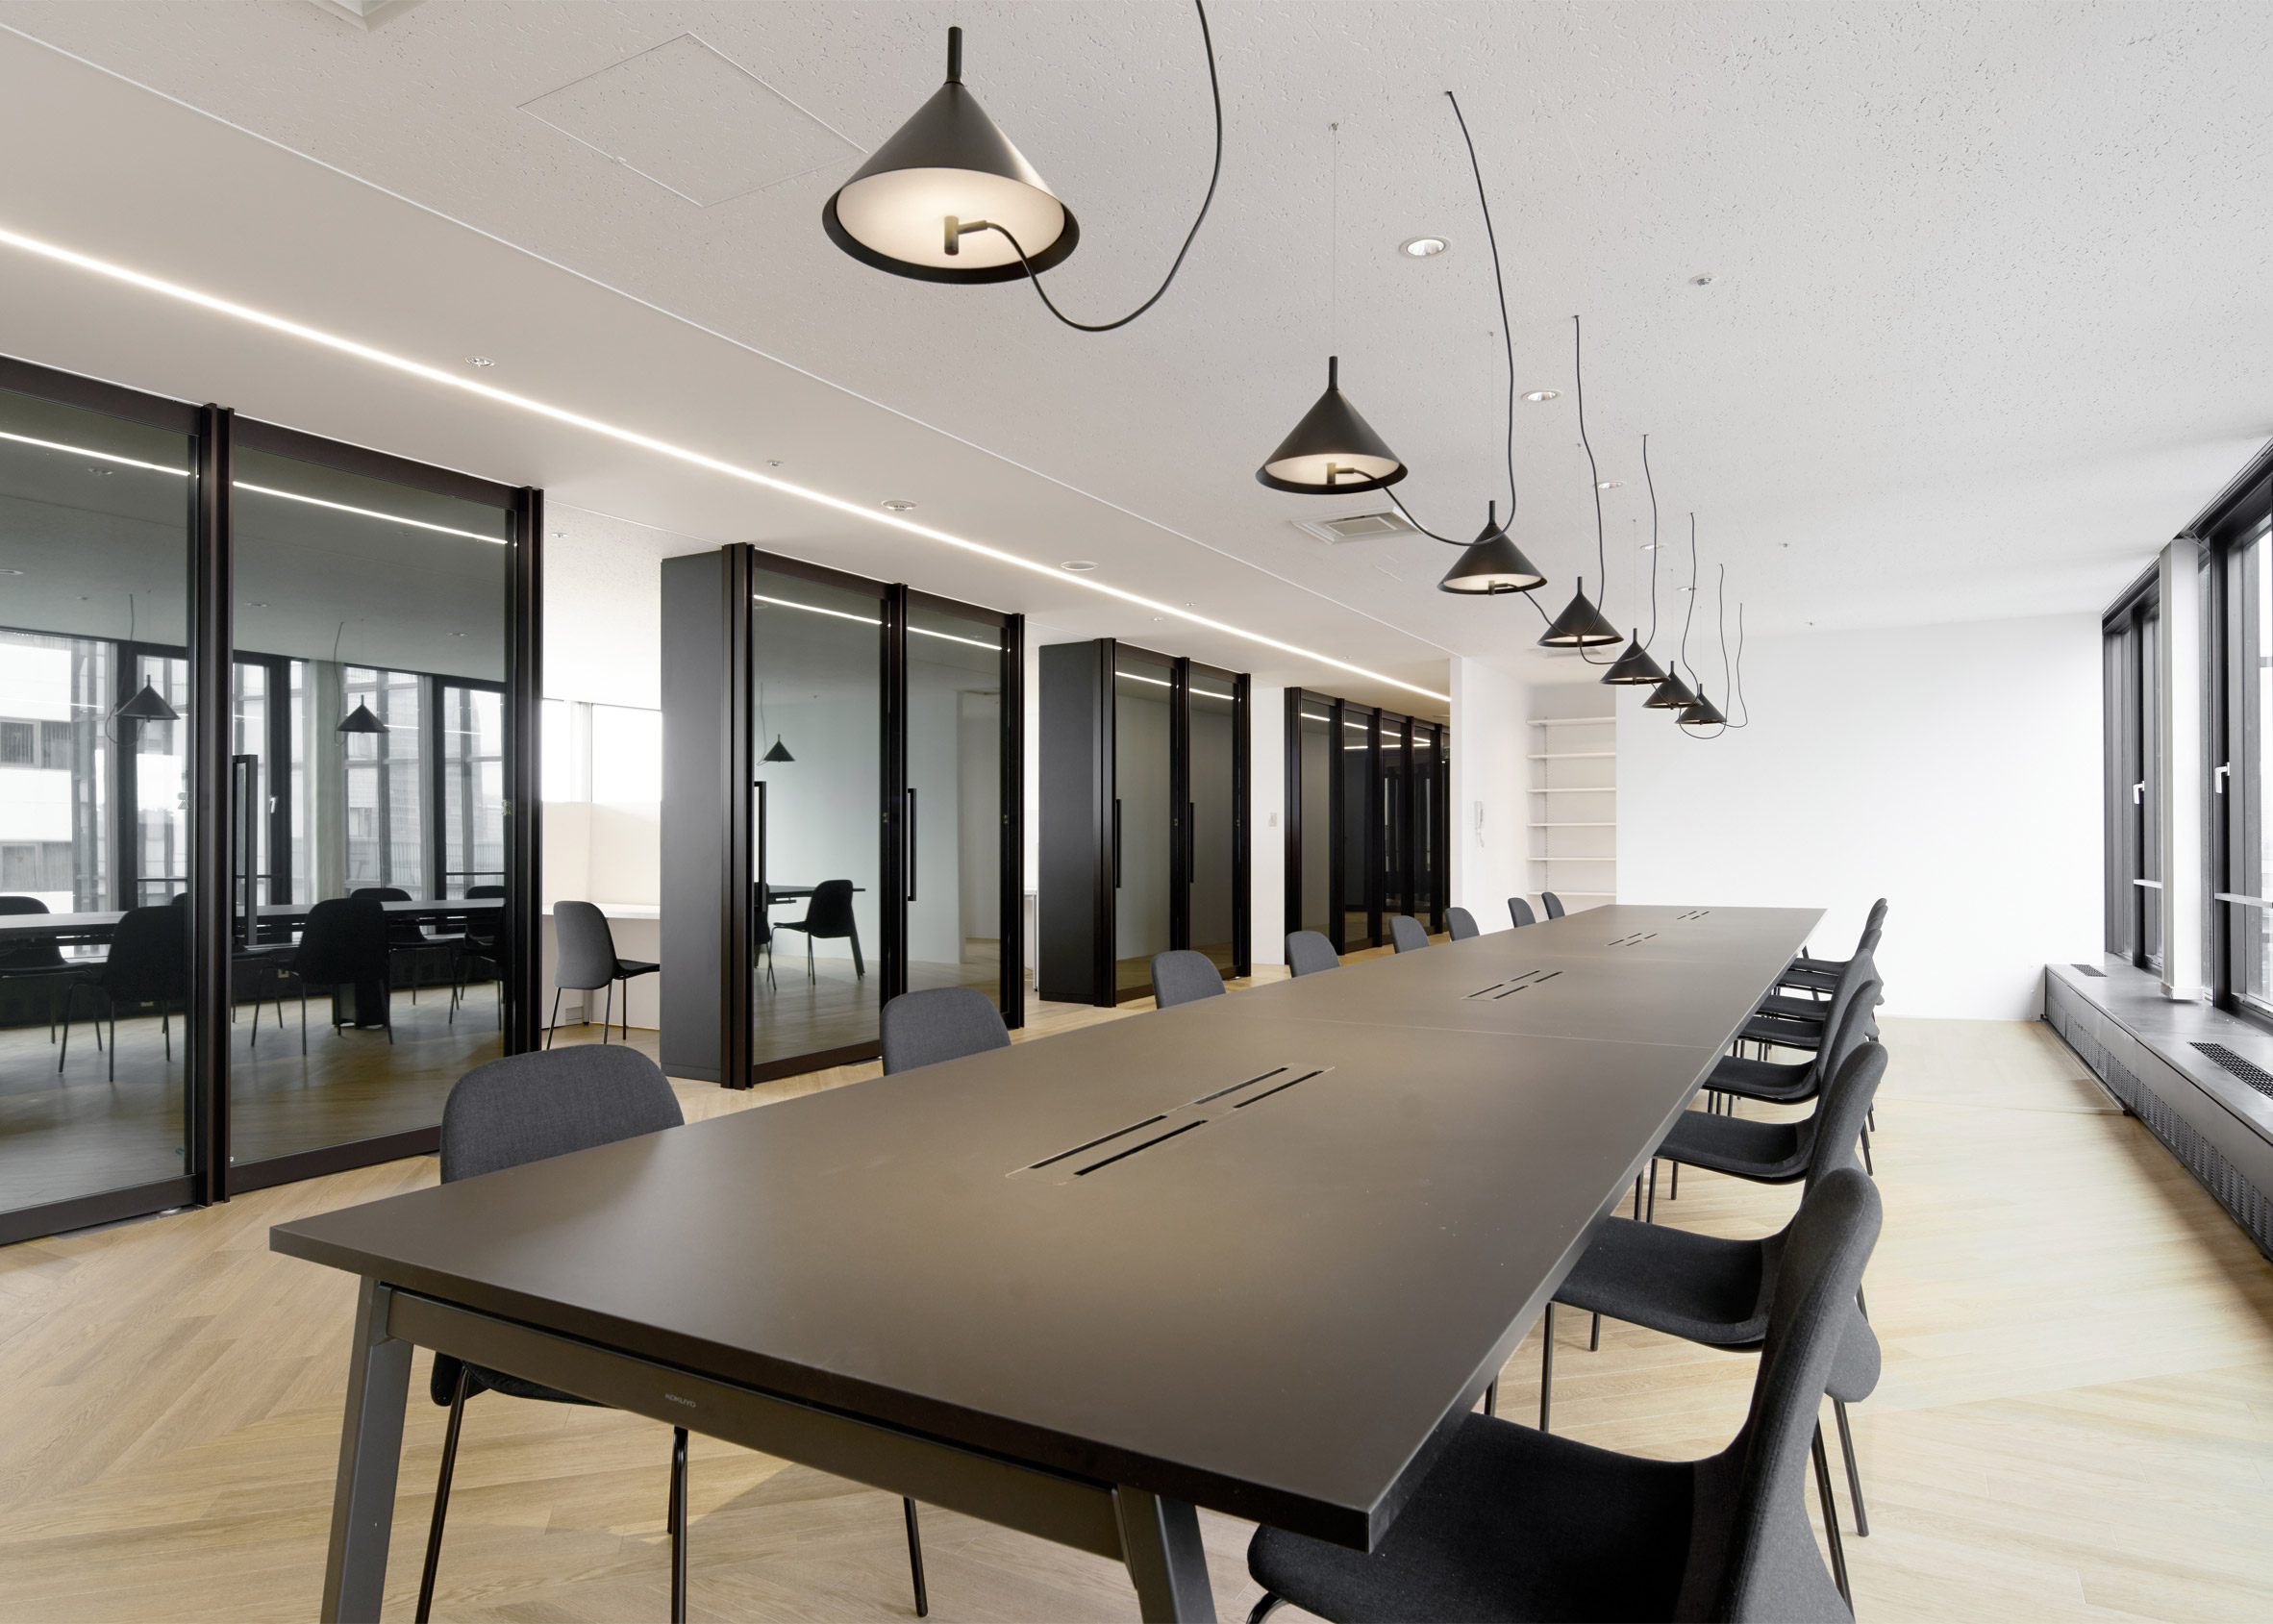 12 Of The Best Minimalist Office Interiors Where Thereu0027s Space To Think